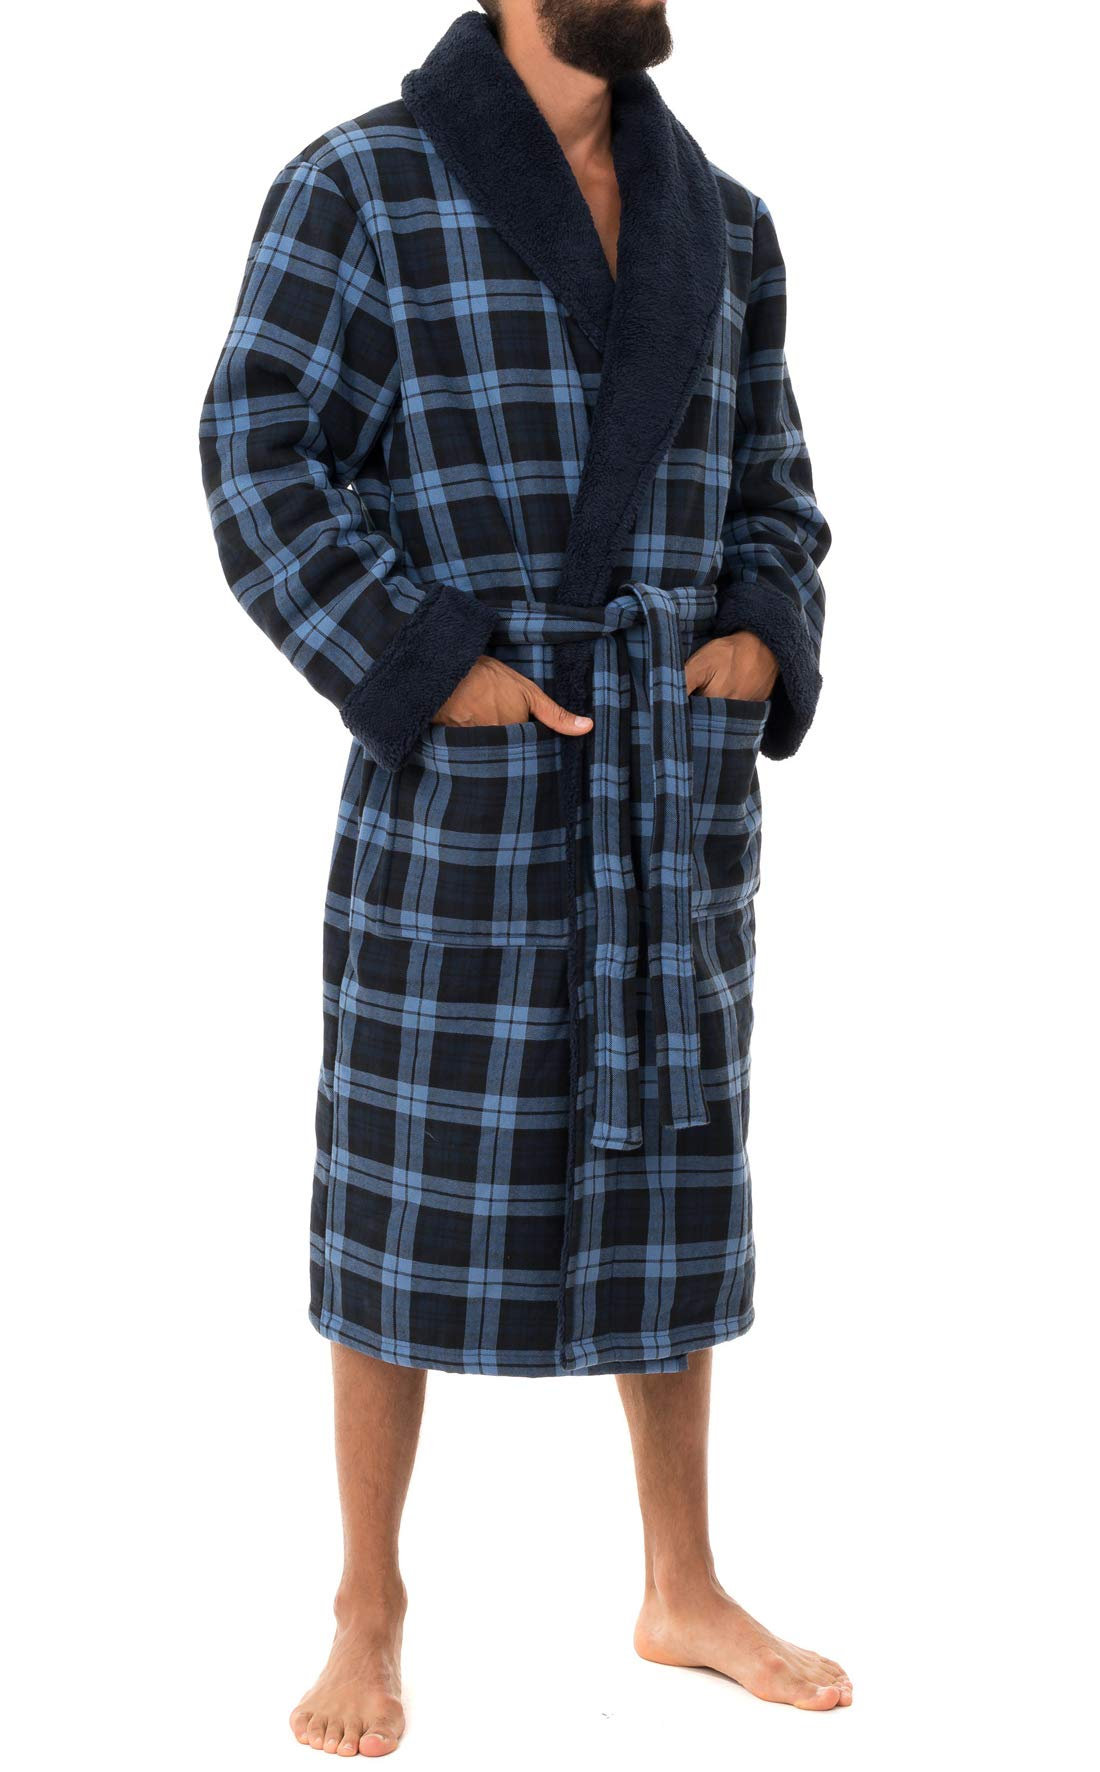 Image of Comfortable and Stylish Blue Plaid Fleece Robe for Men